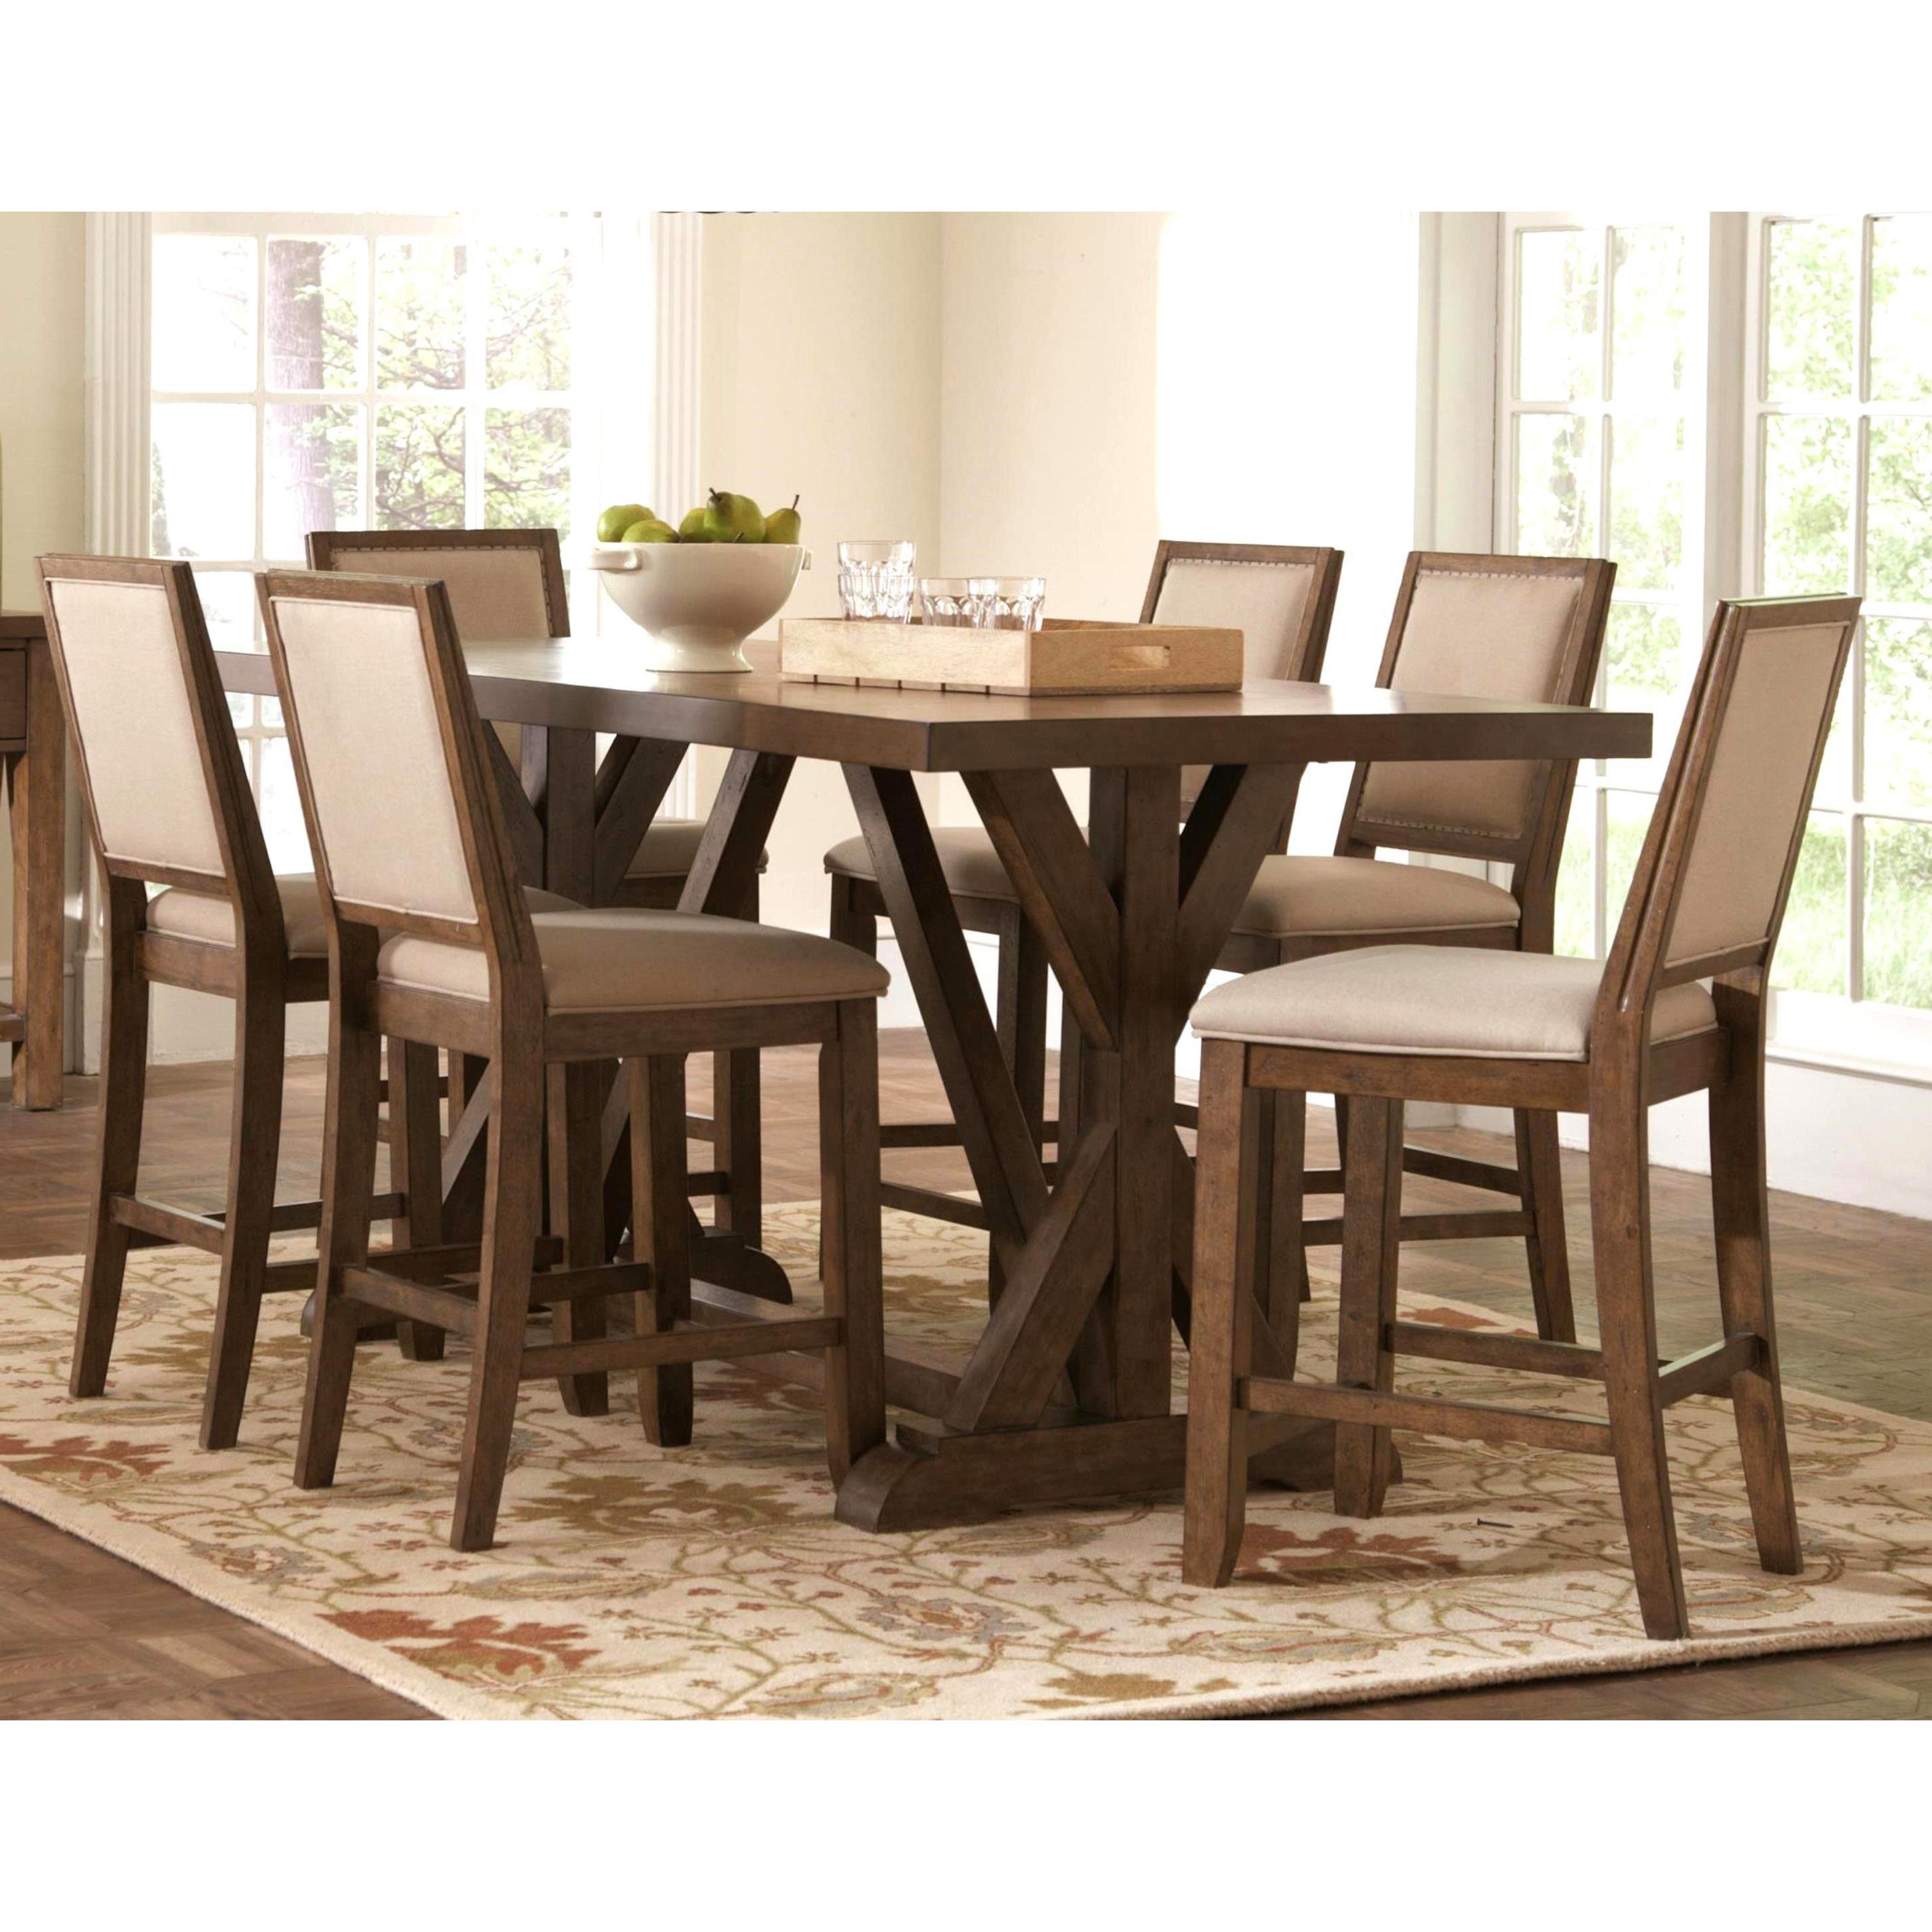 Shop Sontuoso Rustic Trestle Base European Design Counter Height 7 In Popular Wallflower 3 Piece Dining Sets (View 14 of 25)